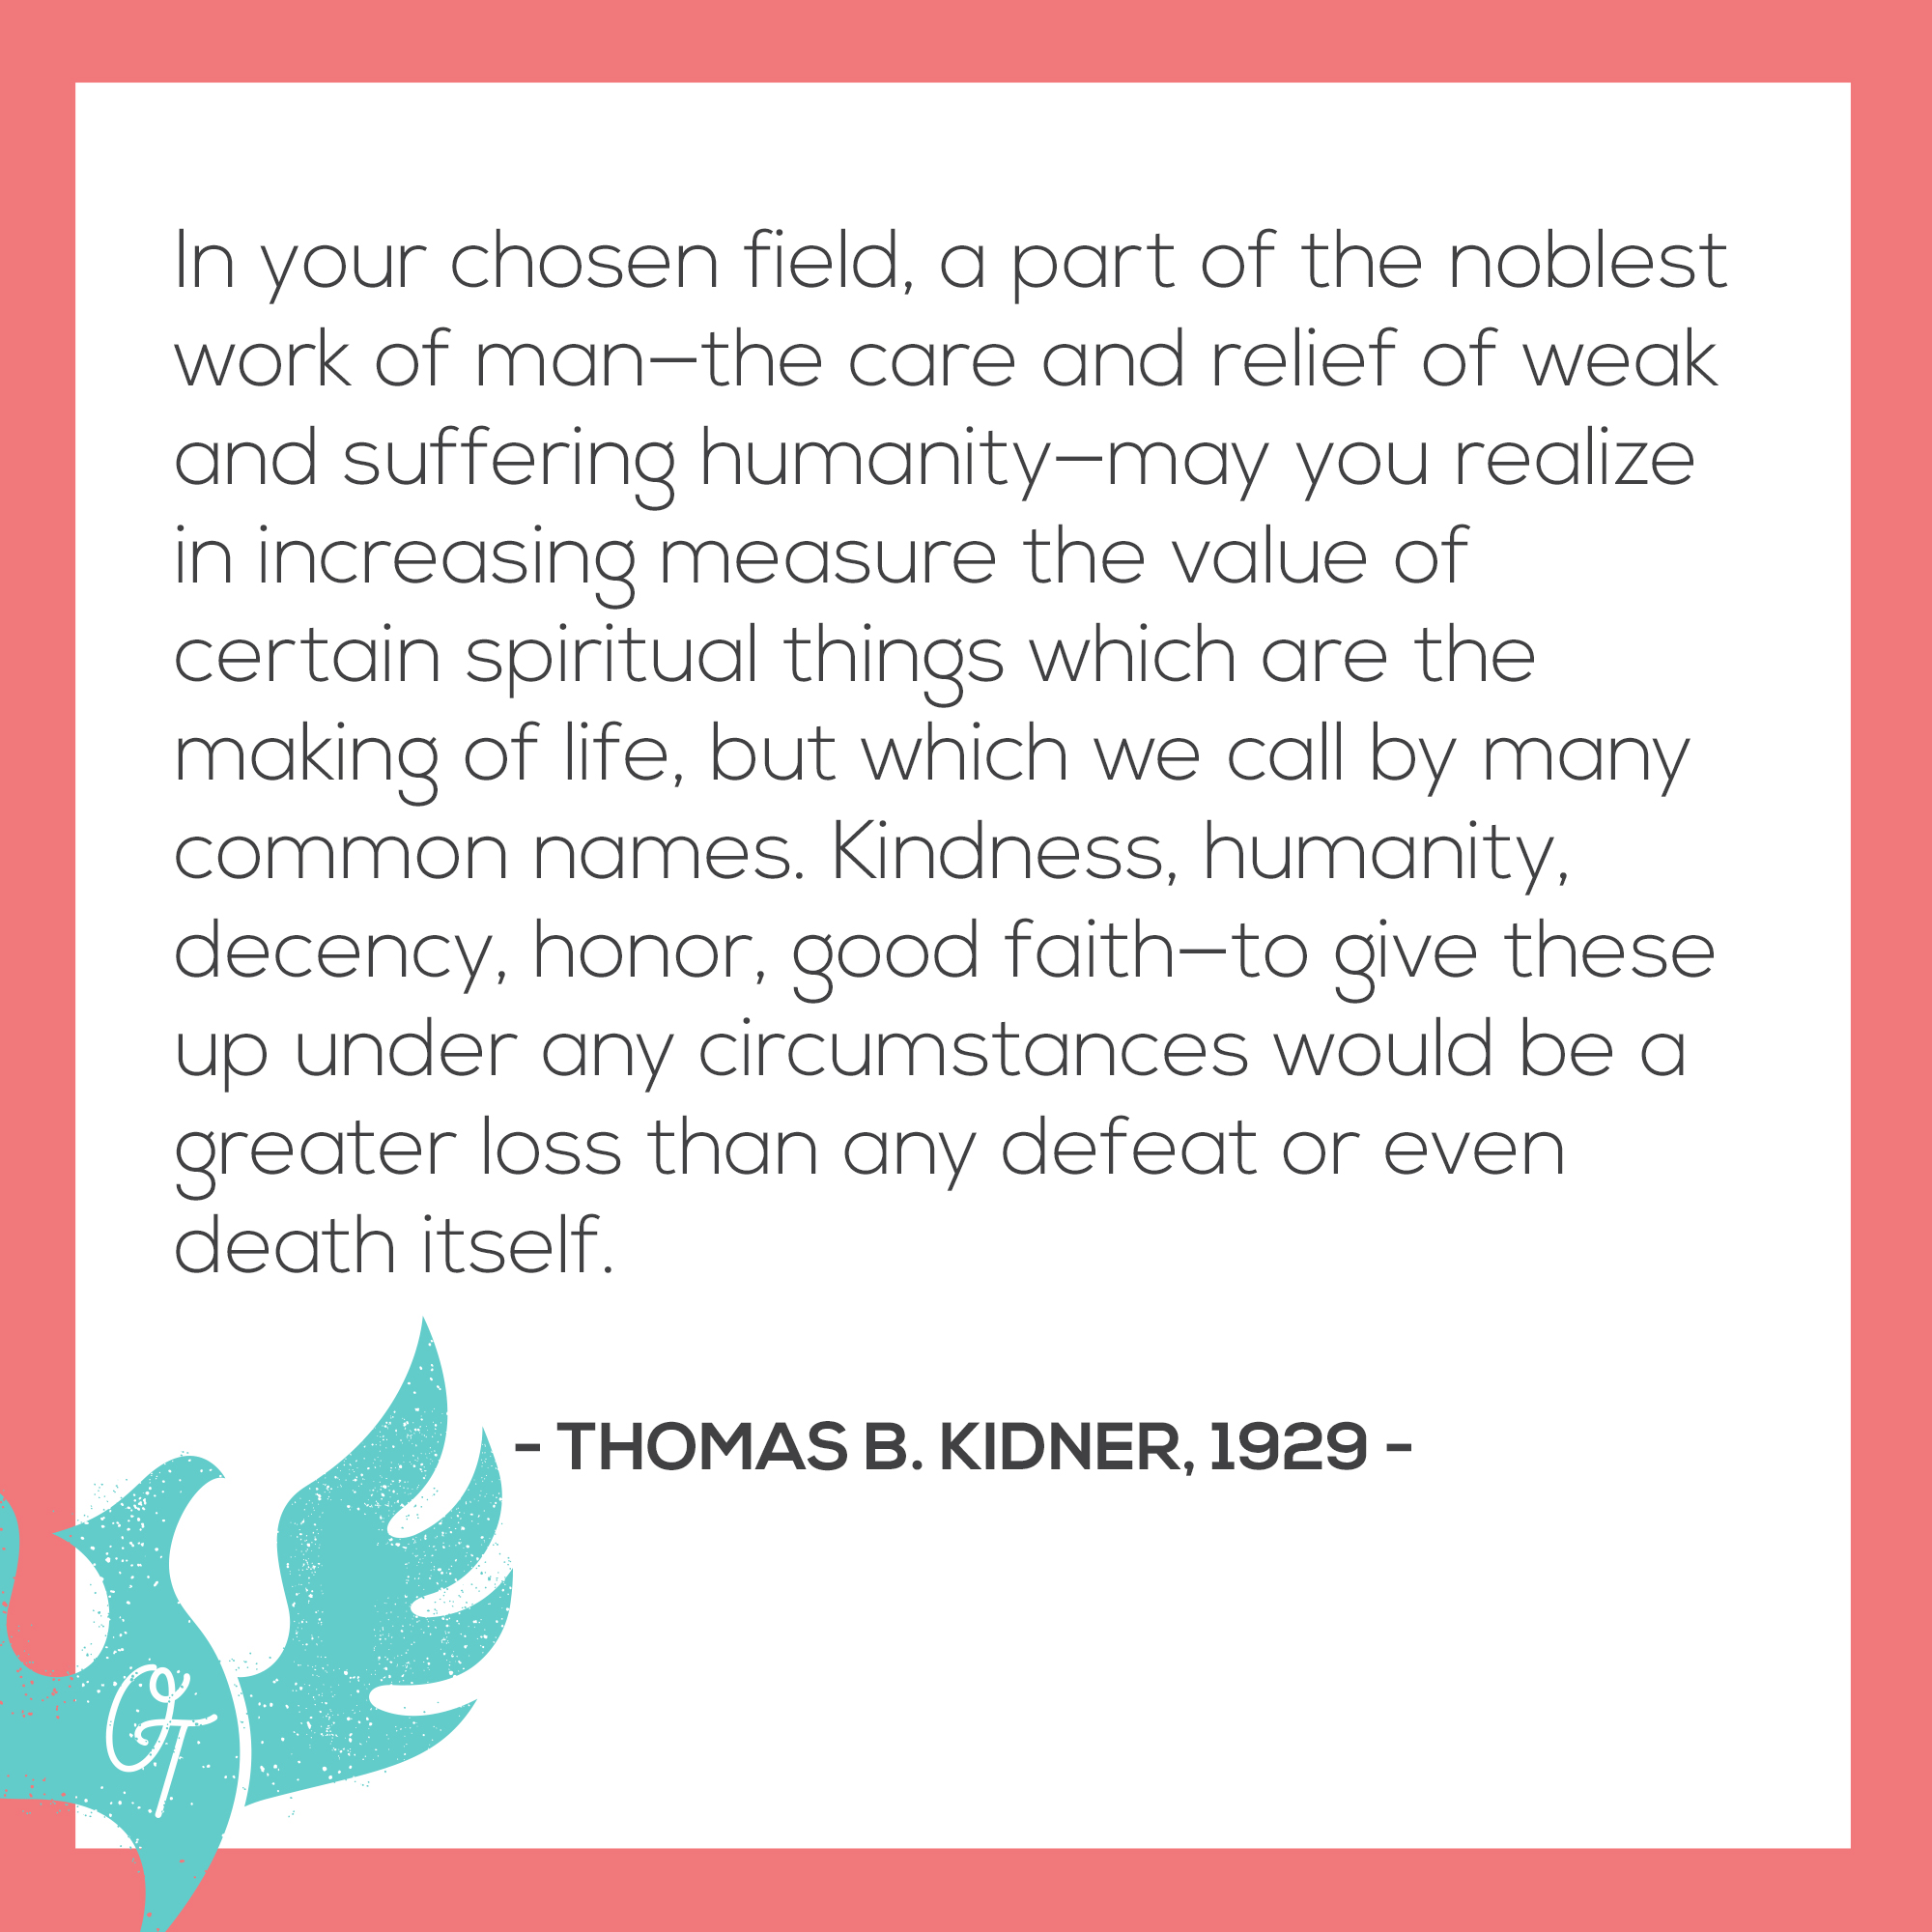 An excerpt by Thomas Kidner, one of the founders of occupational therapy.